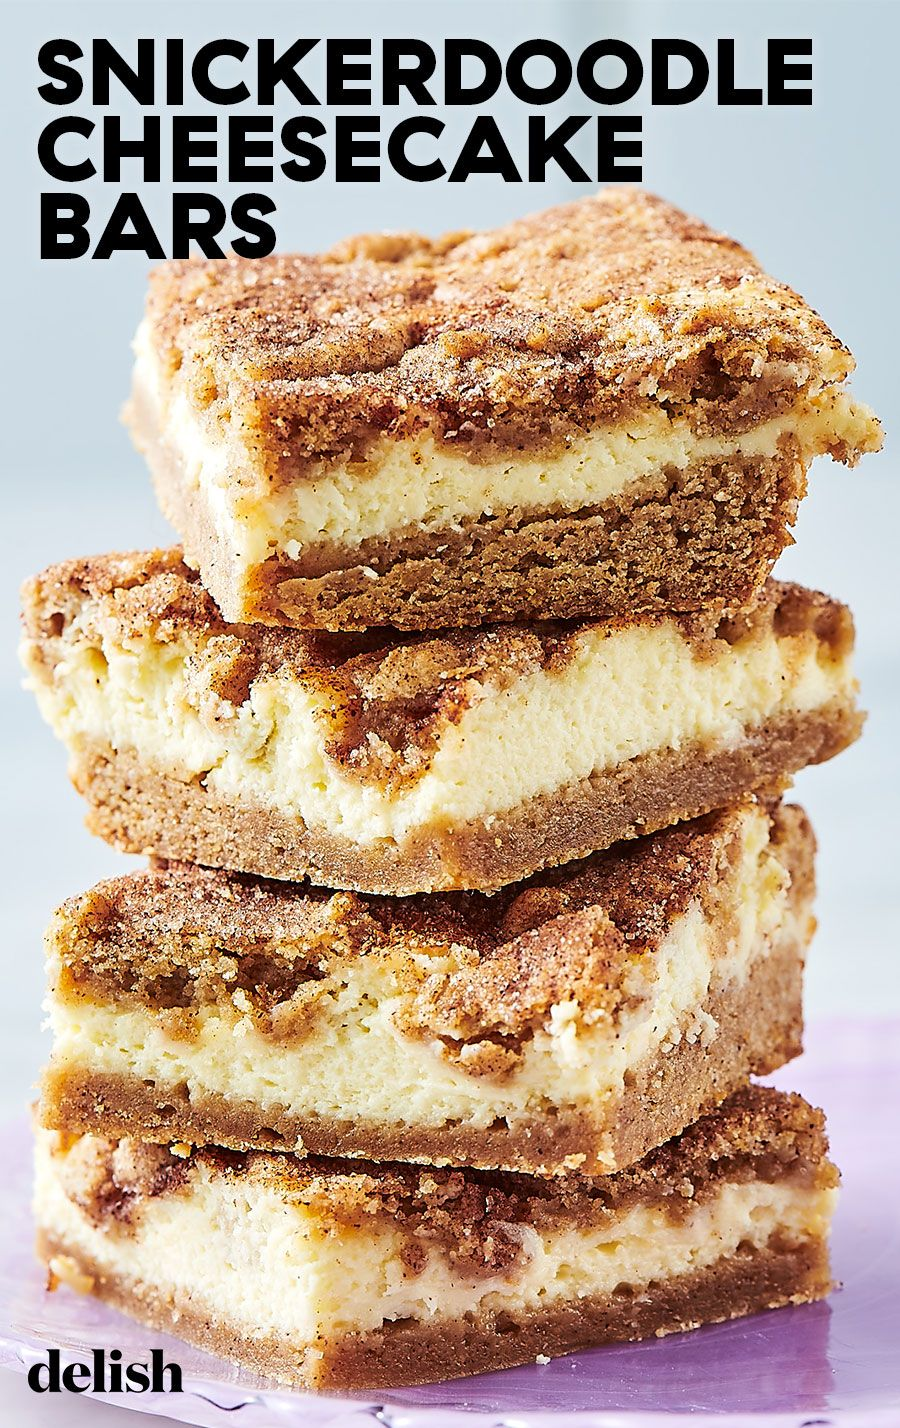 Snickerdoodle Cheesecake Bars #easydesserts